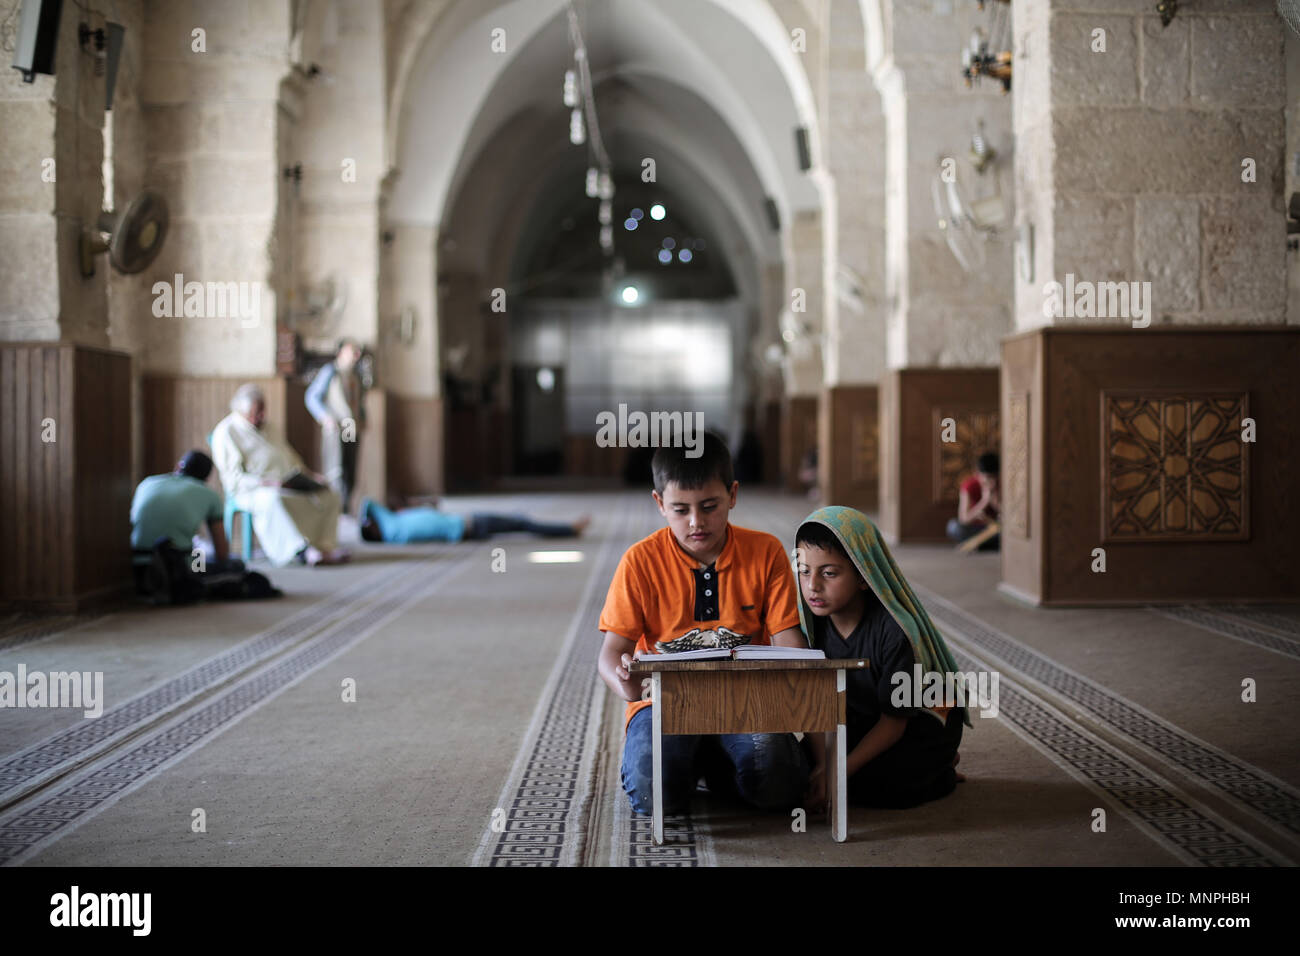 Idlib, Syria. 18th May, 2018. Syrian children who have been evacuated from the rebel-held area of Homs, read verses of Quran, Islam's holy book, at the Great Mosque of Maarat al-Numaan during the holy fasting month of Ramadan, near Idlib, Syria, 18 May 2018.Ramadan is the ninth and holiest month of the Islamic calendar in which Muslims from all over the world refrain from eating, drinking and smoking from dawn to dusk. Credit: Anas Alkharboutli/dpa/Alamy Live News - Stock Image